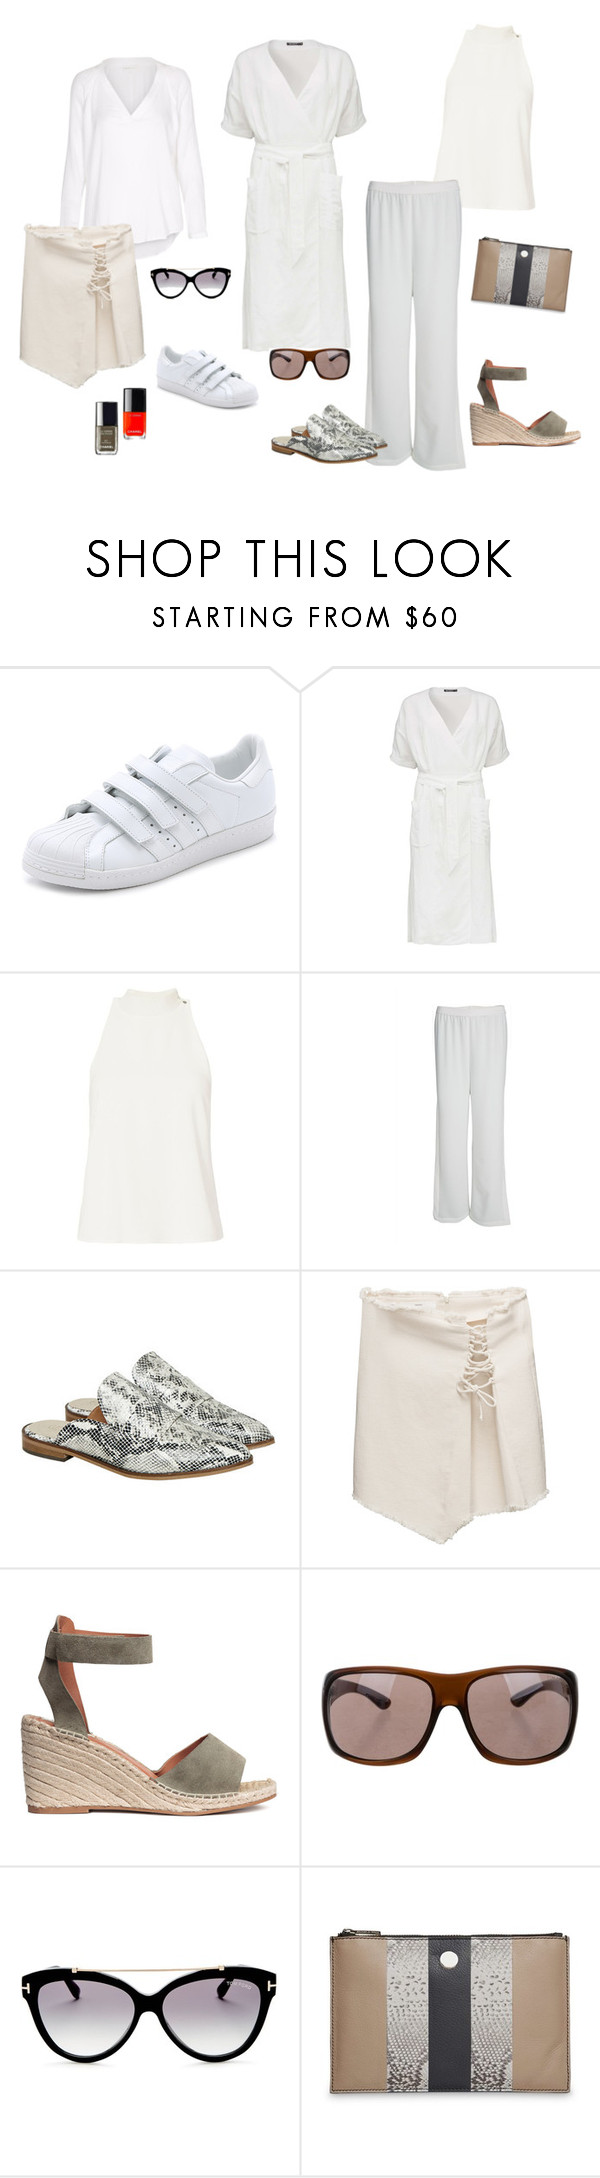 """""""Lækre sommeroutfits"""" by frederikke-e on Polyvore featuring adidas, A.L.C., Designers Remix, Gestuz, Tom Ford and Chanel"""